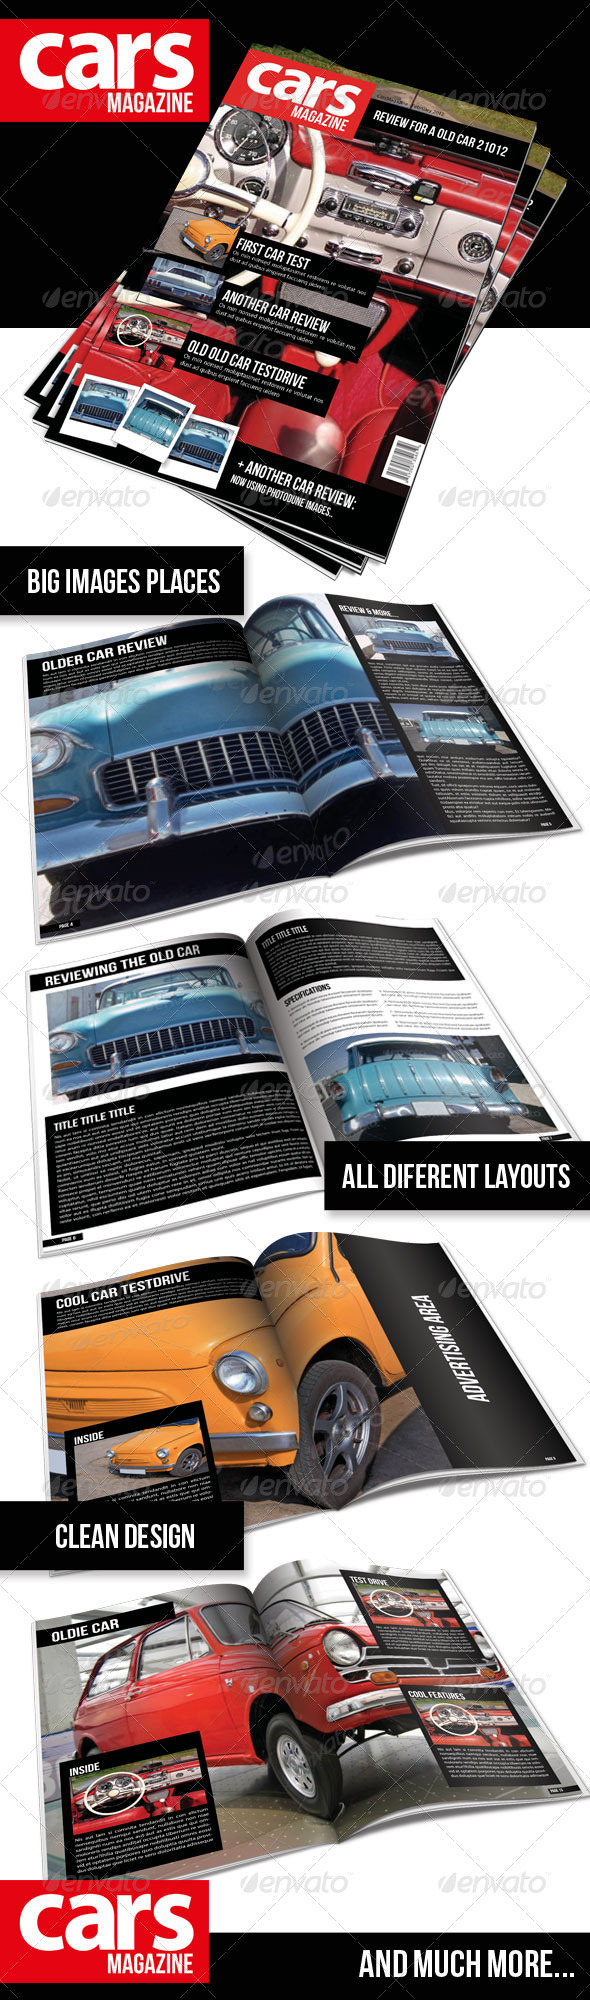 Cars Magazine Indesign Template - Magazines Print Templates